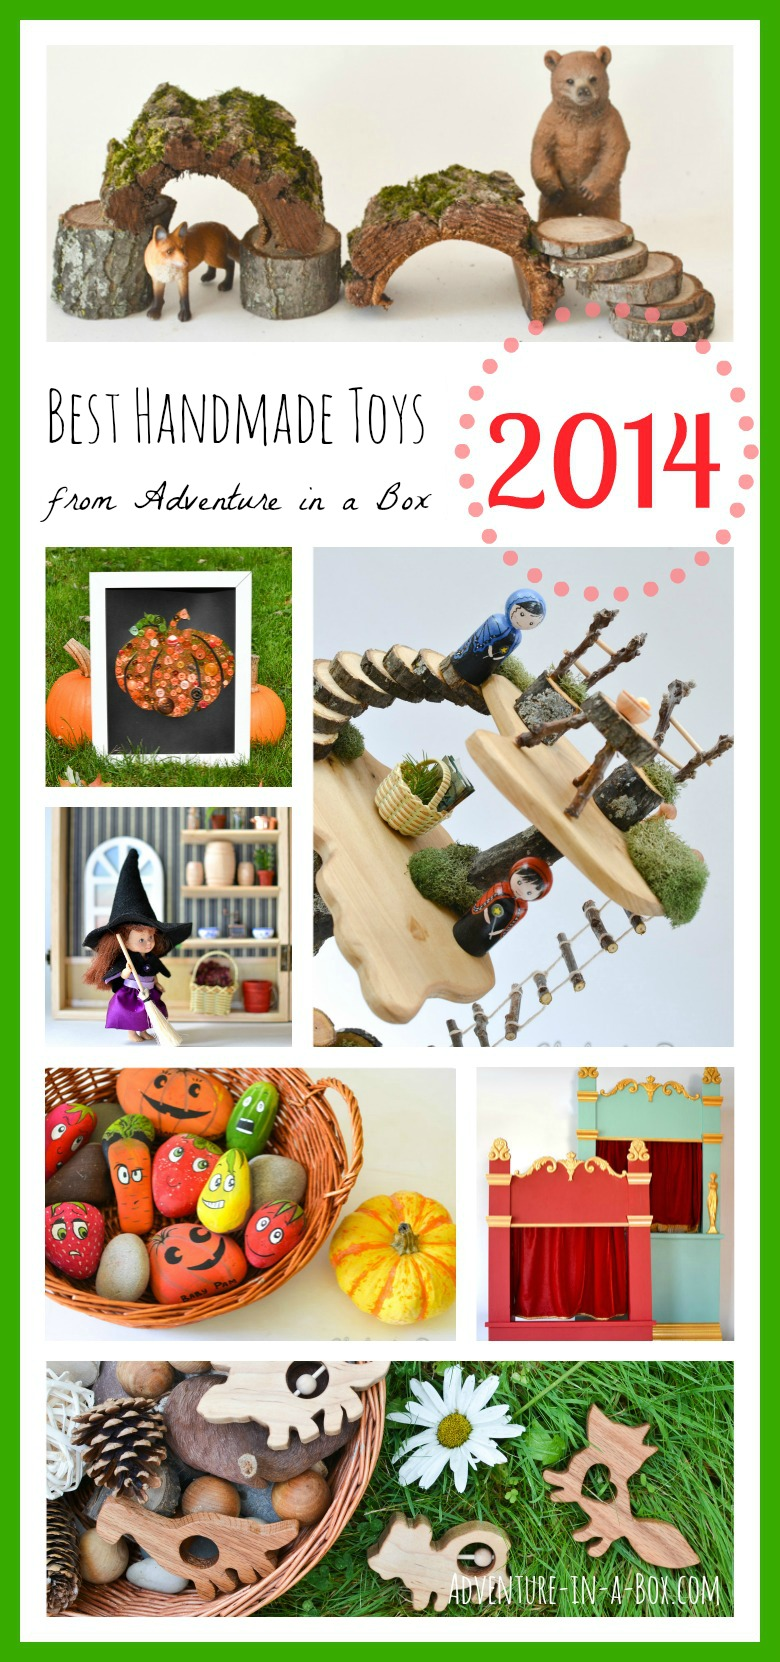 Best Posts of Adventure in a Box in 2014: the selection of fun, easy and colourful diy toys and crafts for kids